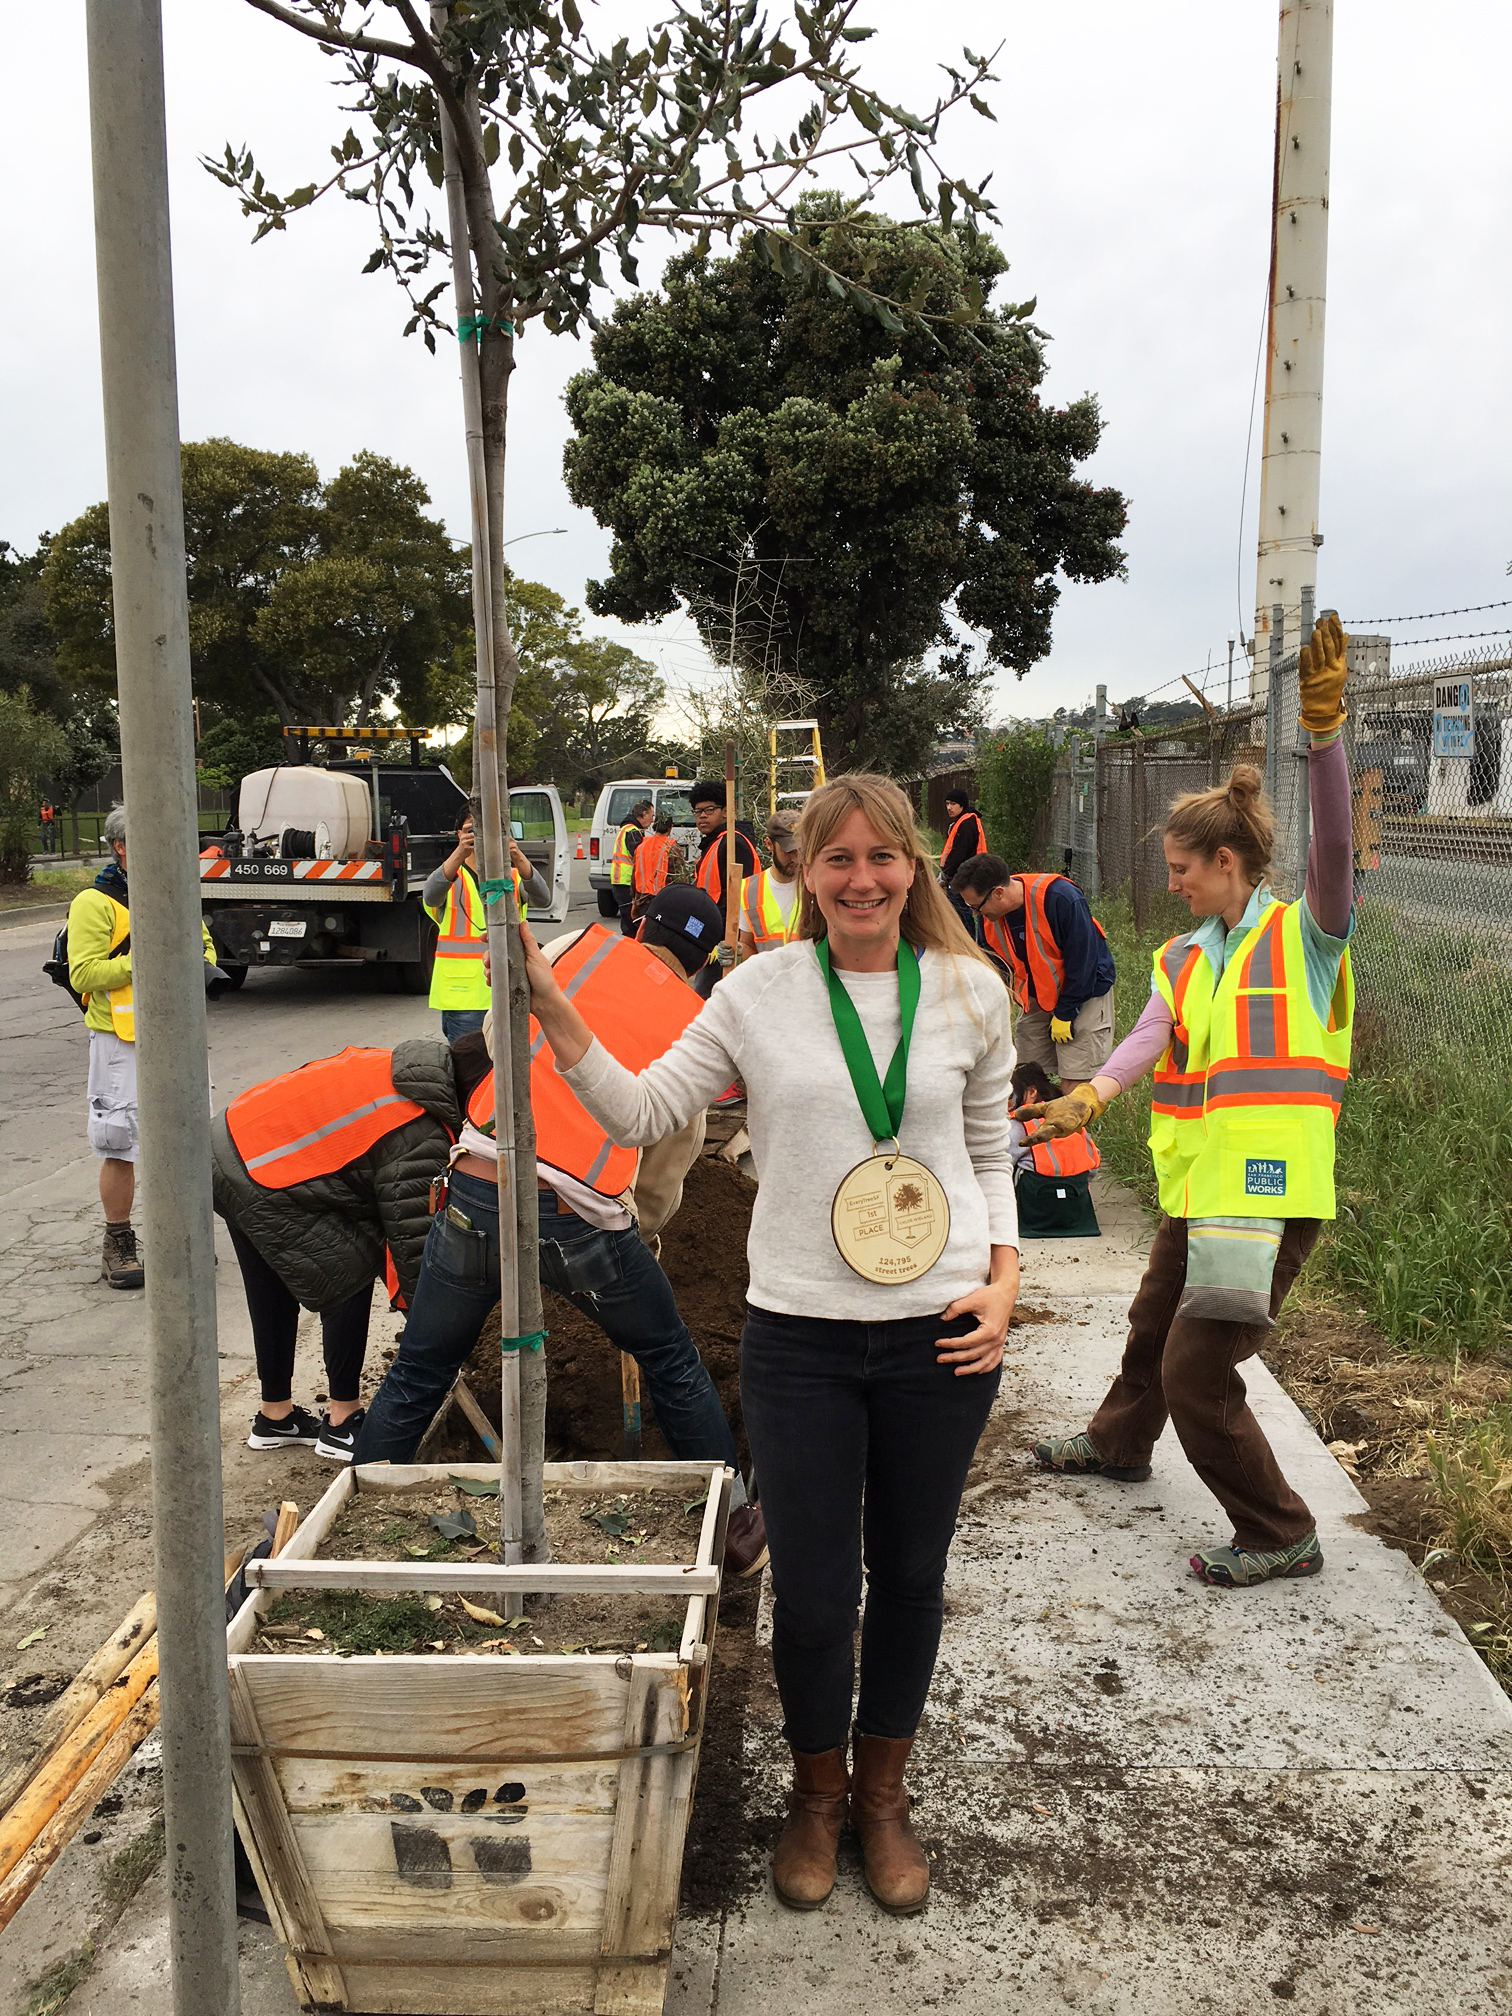 EveryTreeSF Contest Winner, Chloe, with her street tree